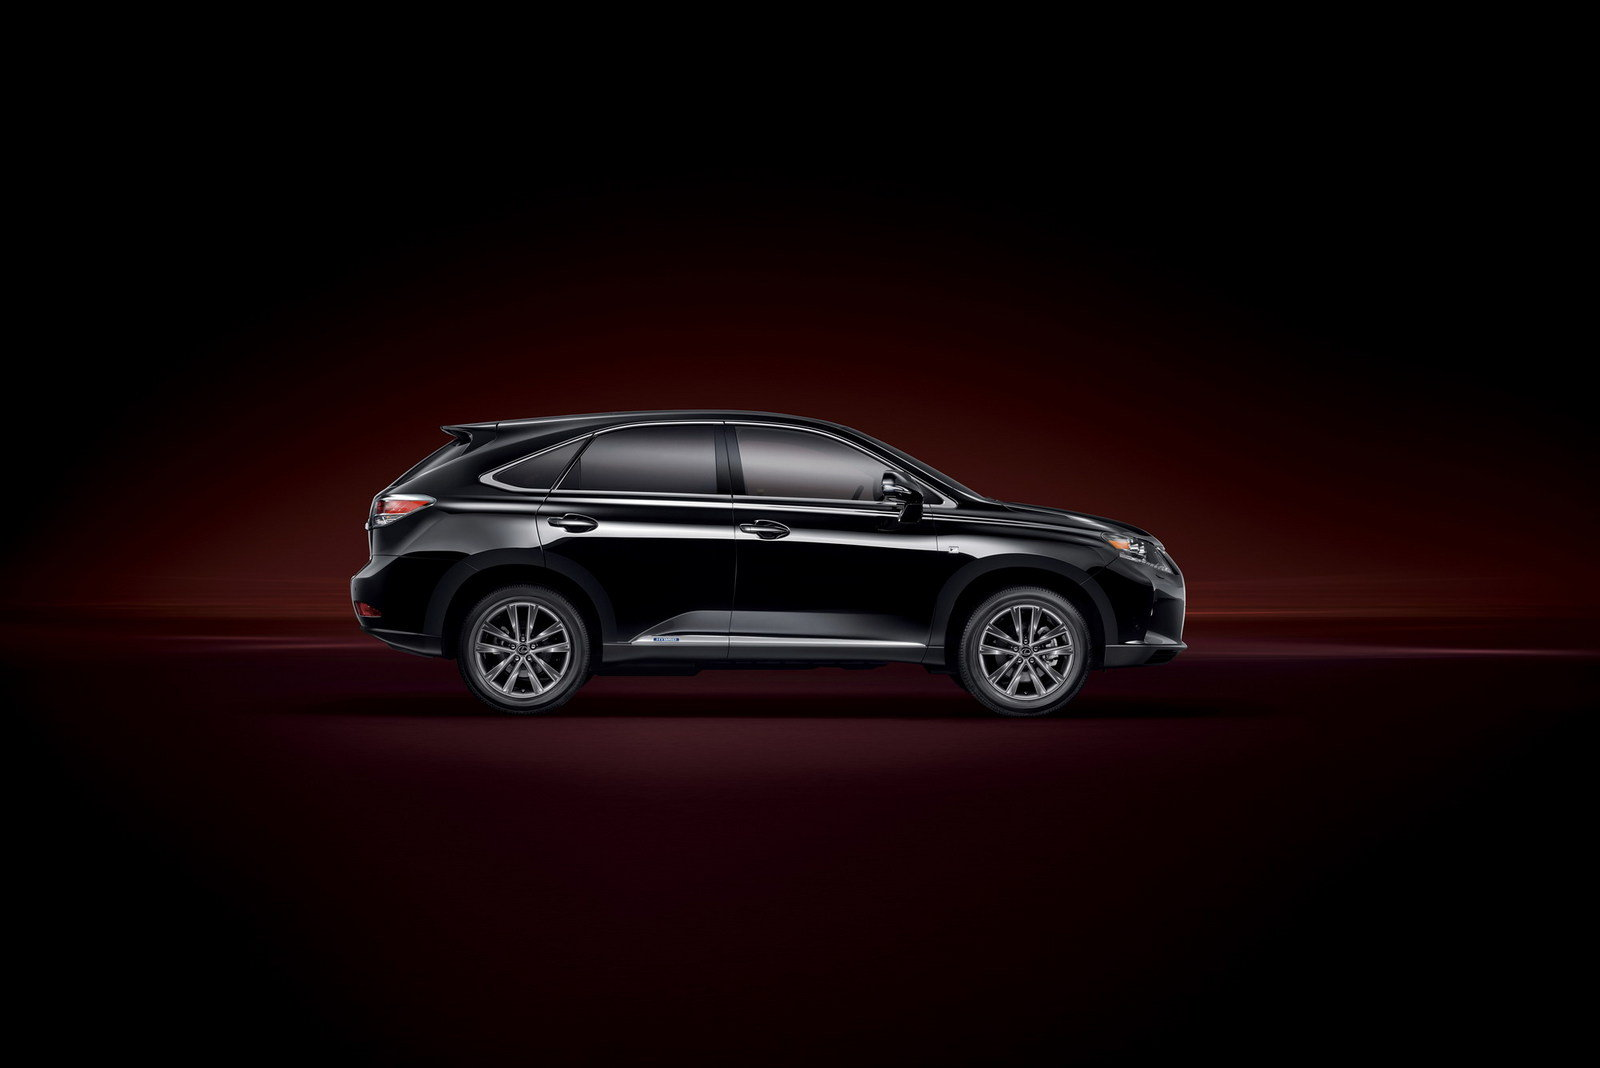 2013 lexus rx 450h f sport picture 441633 car review top speed. Black Bedroom Furniture Sets. Home Design Ideas